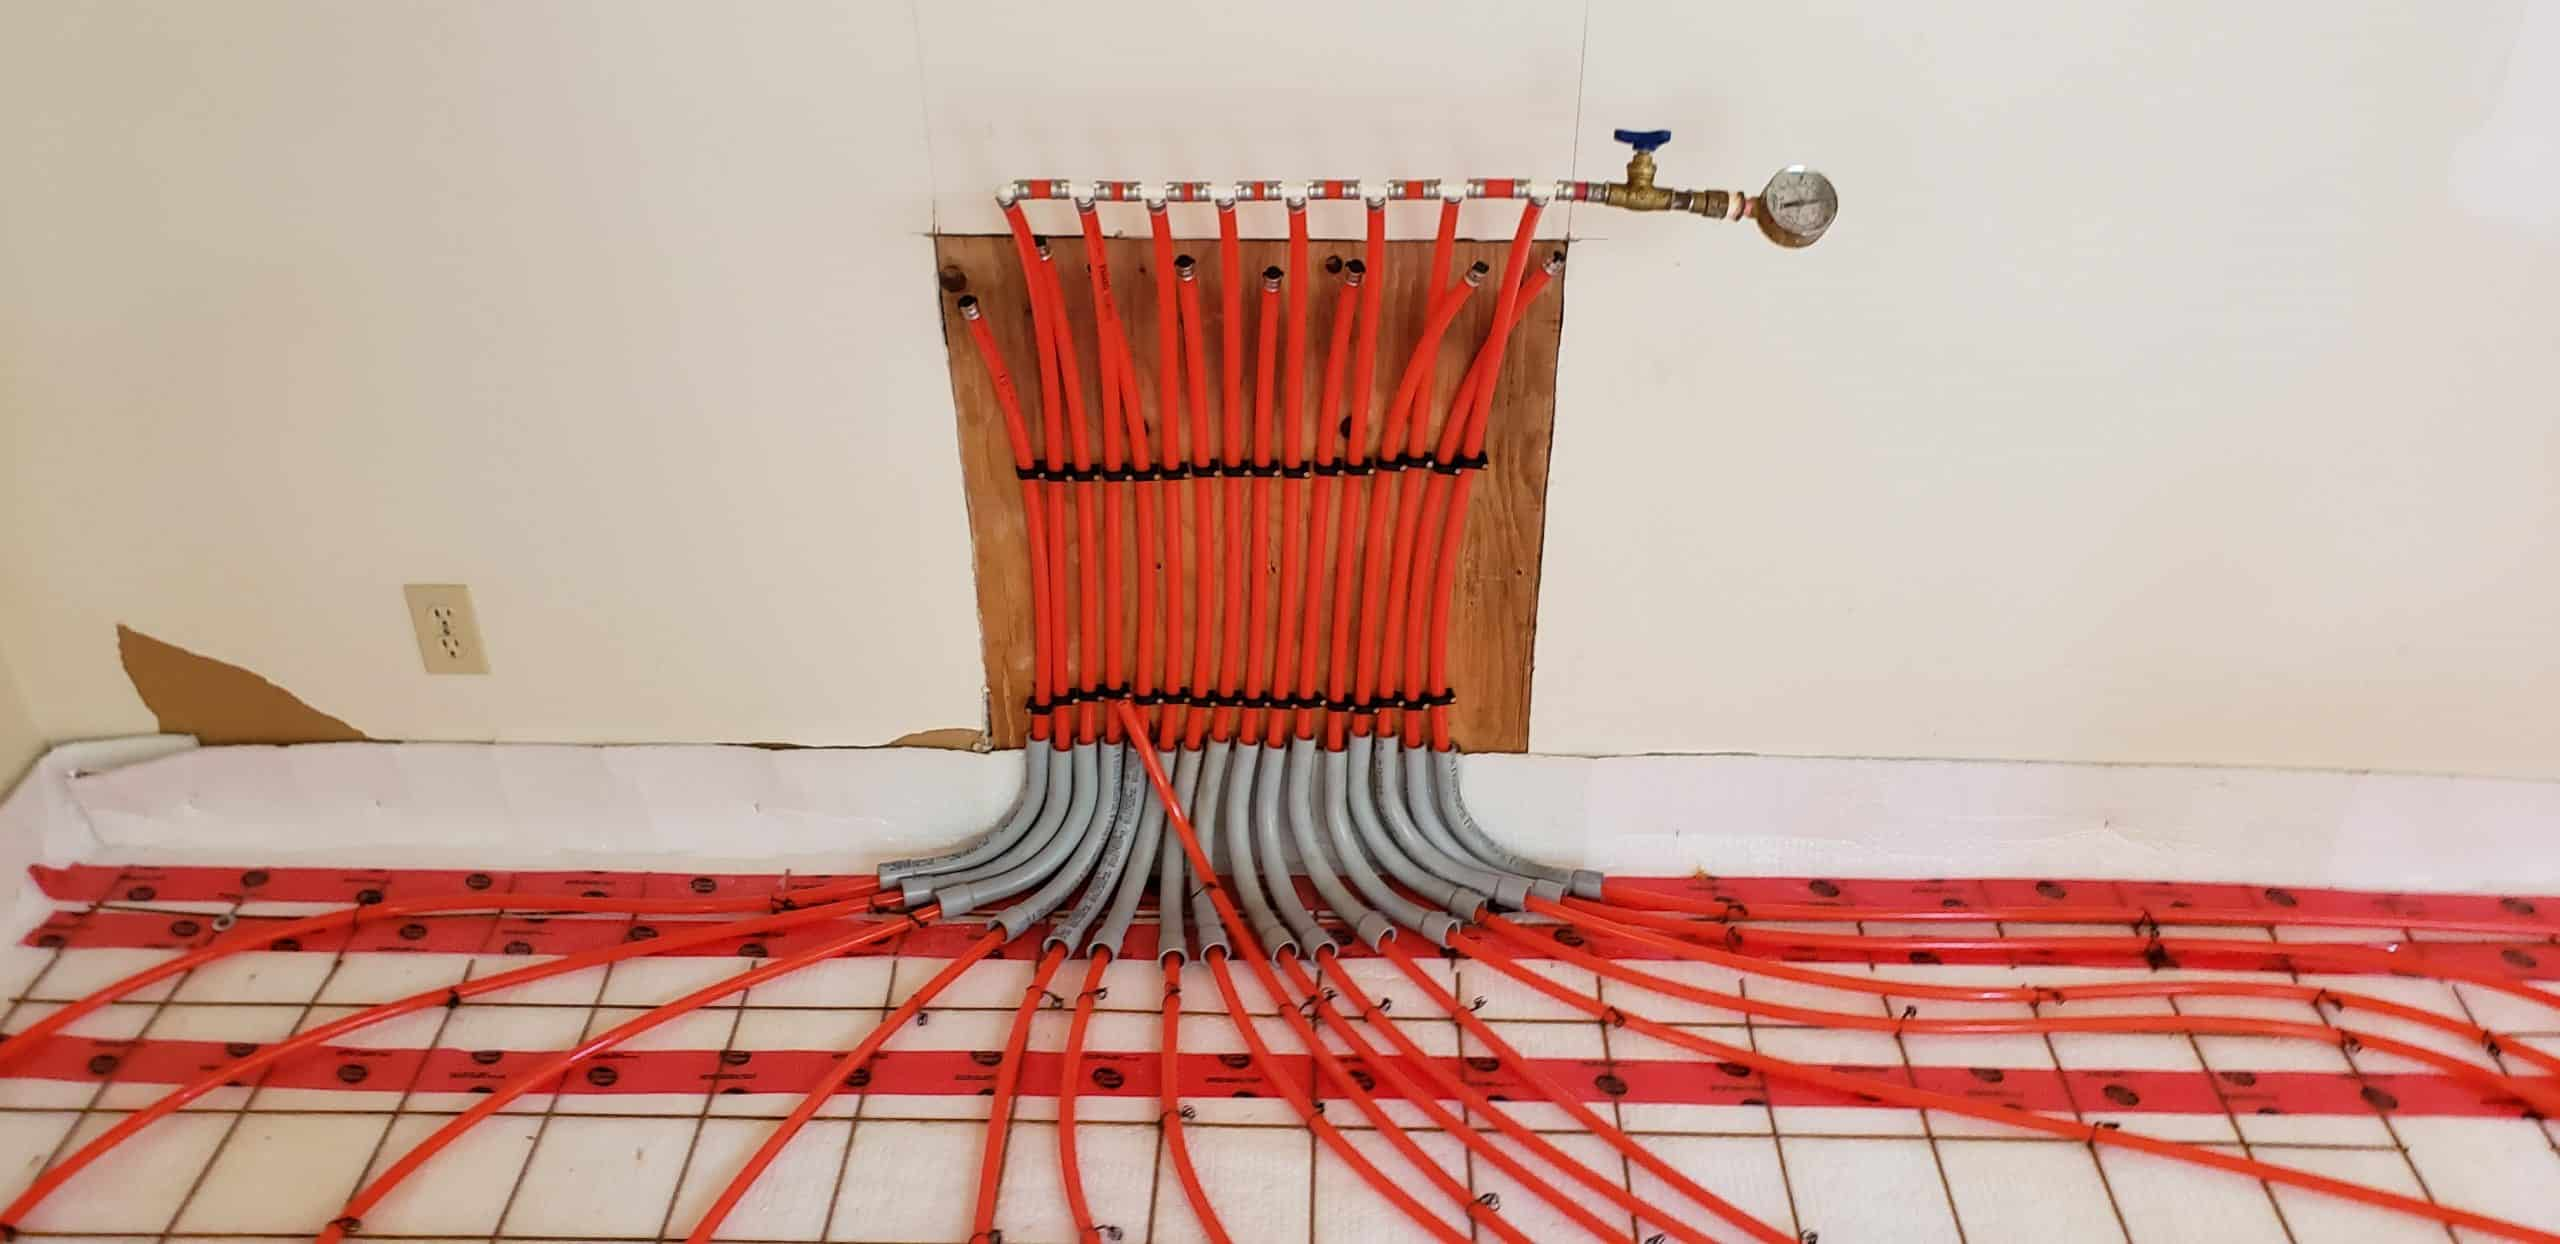 pipes on wire mesh pressurized